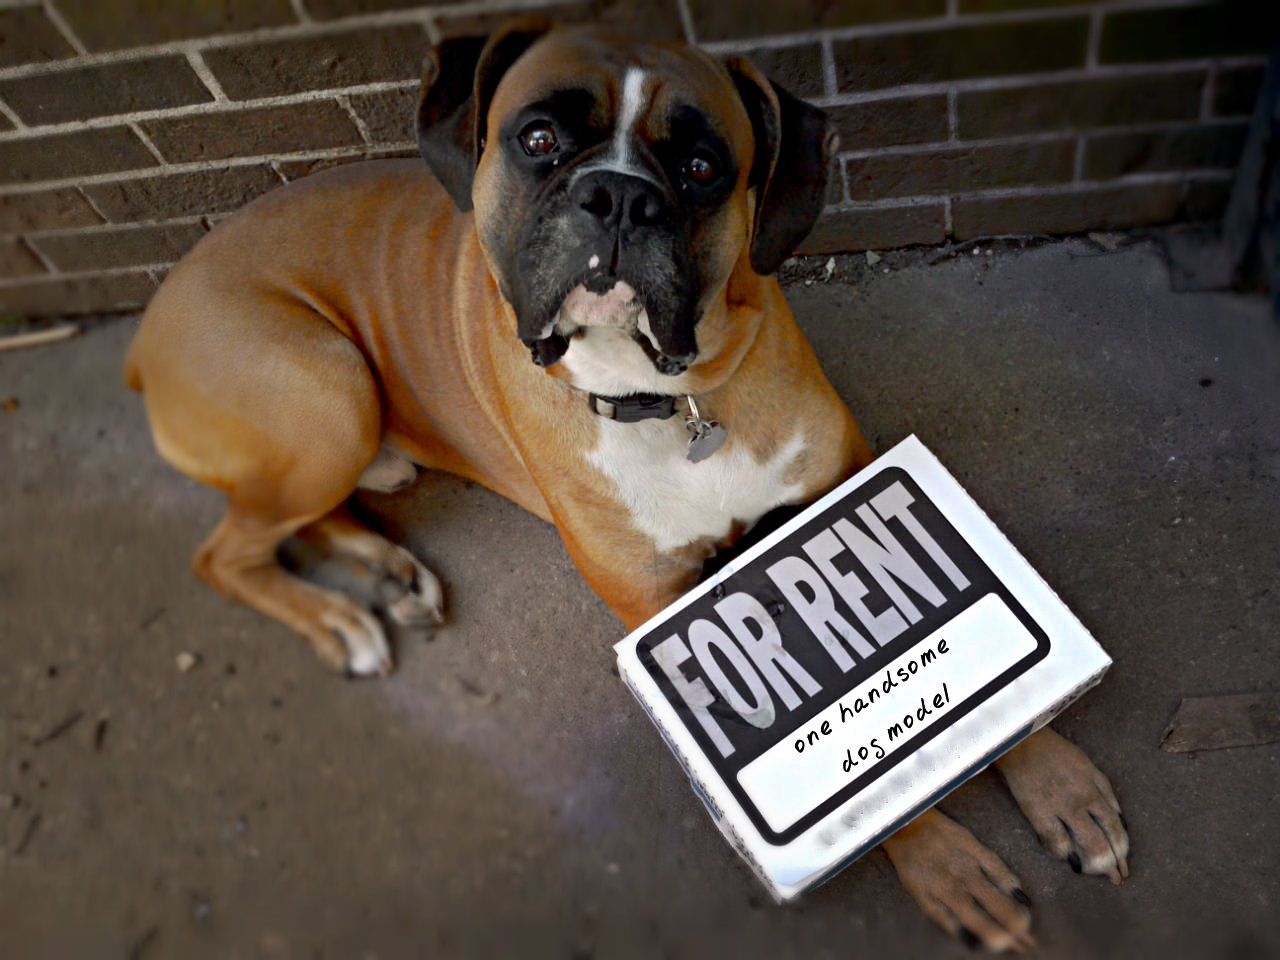 shoot 2 quality pics with experienced dog model & your sign/logo